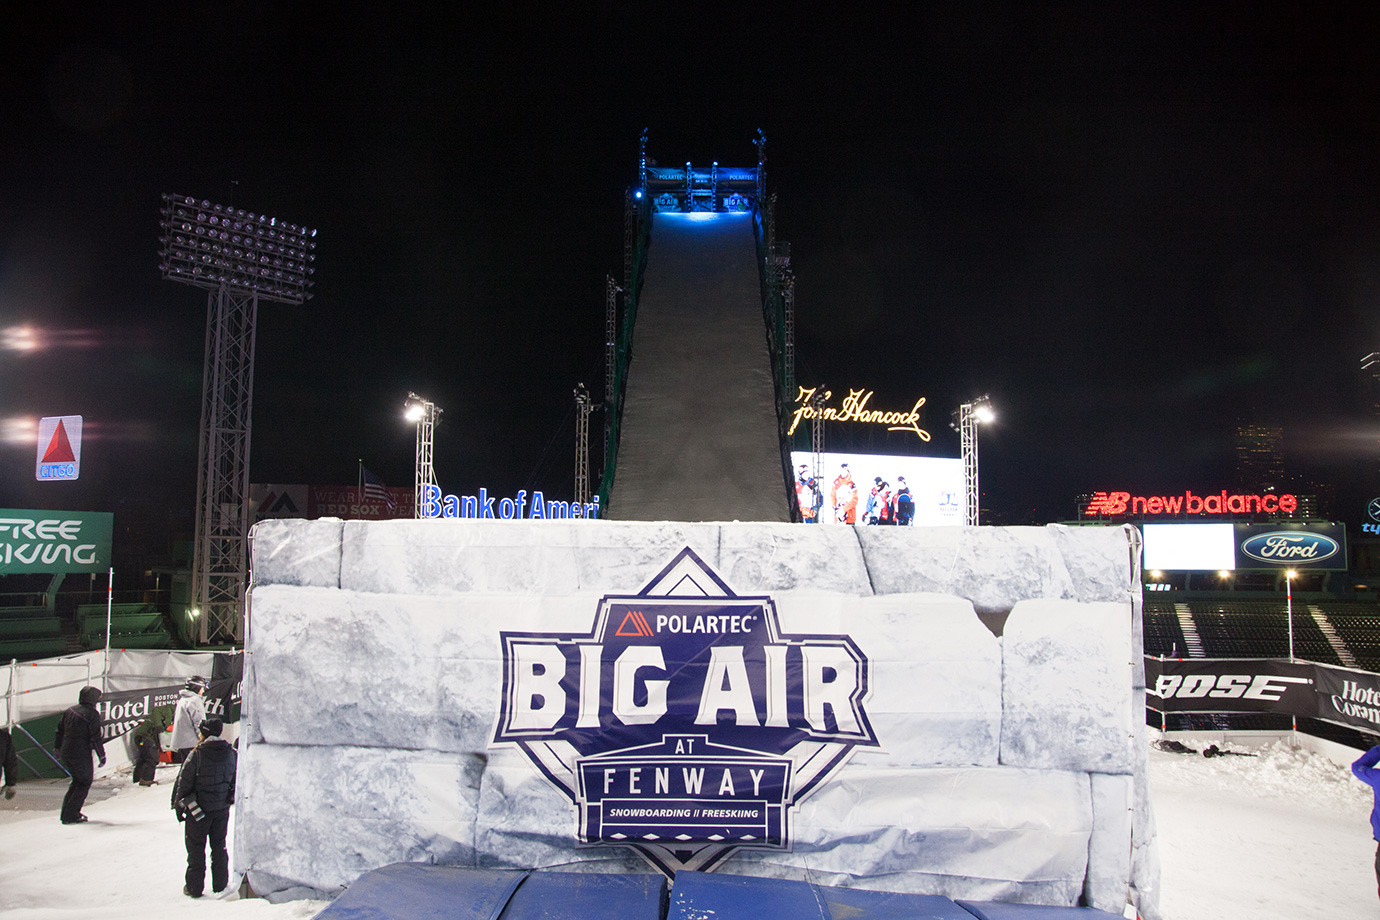 The Big Air ramp from the launch base as the snowboarders are introduced at the snowboarding competition.